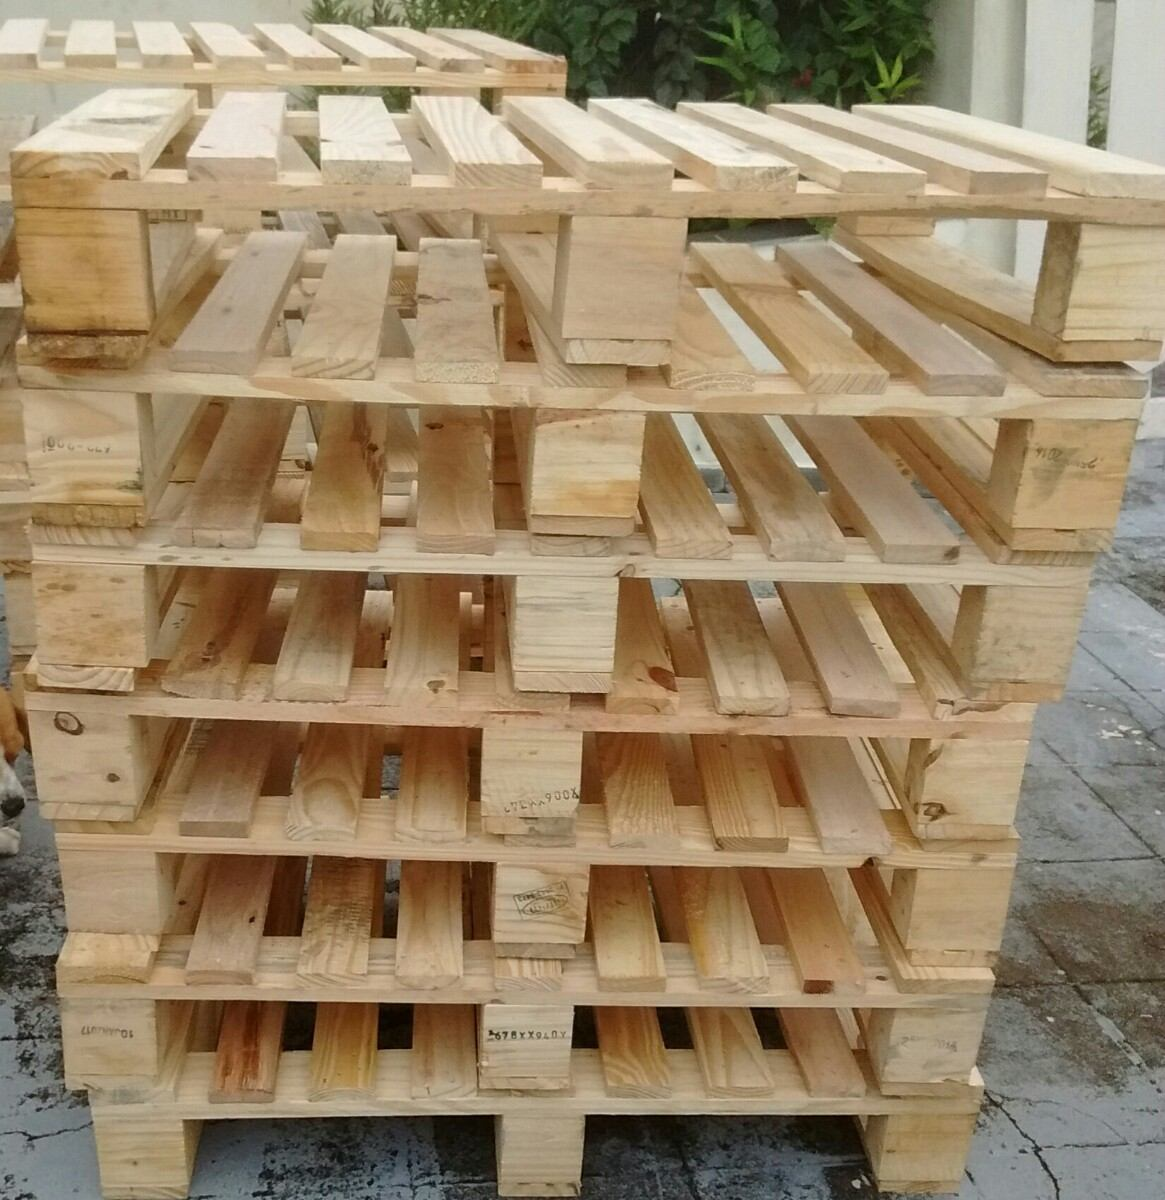 custom made pallets by Next generation pallets.